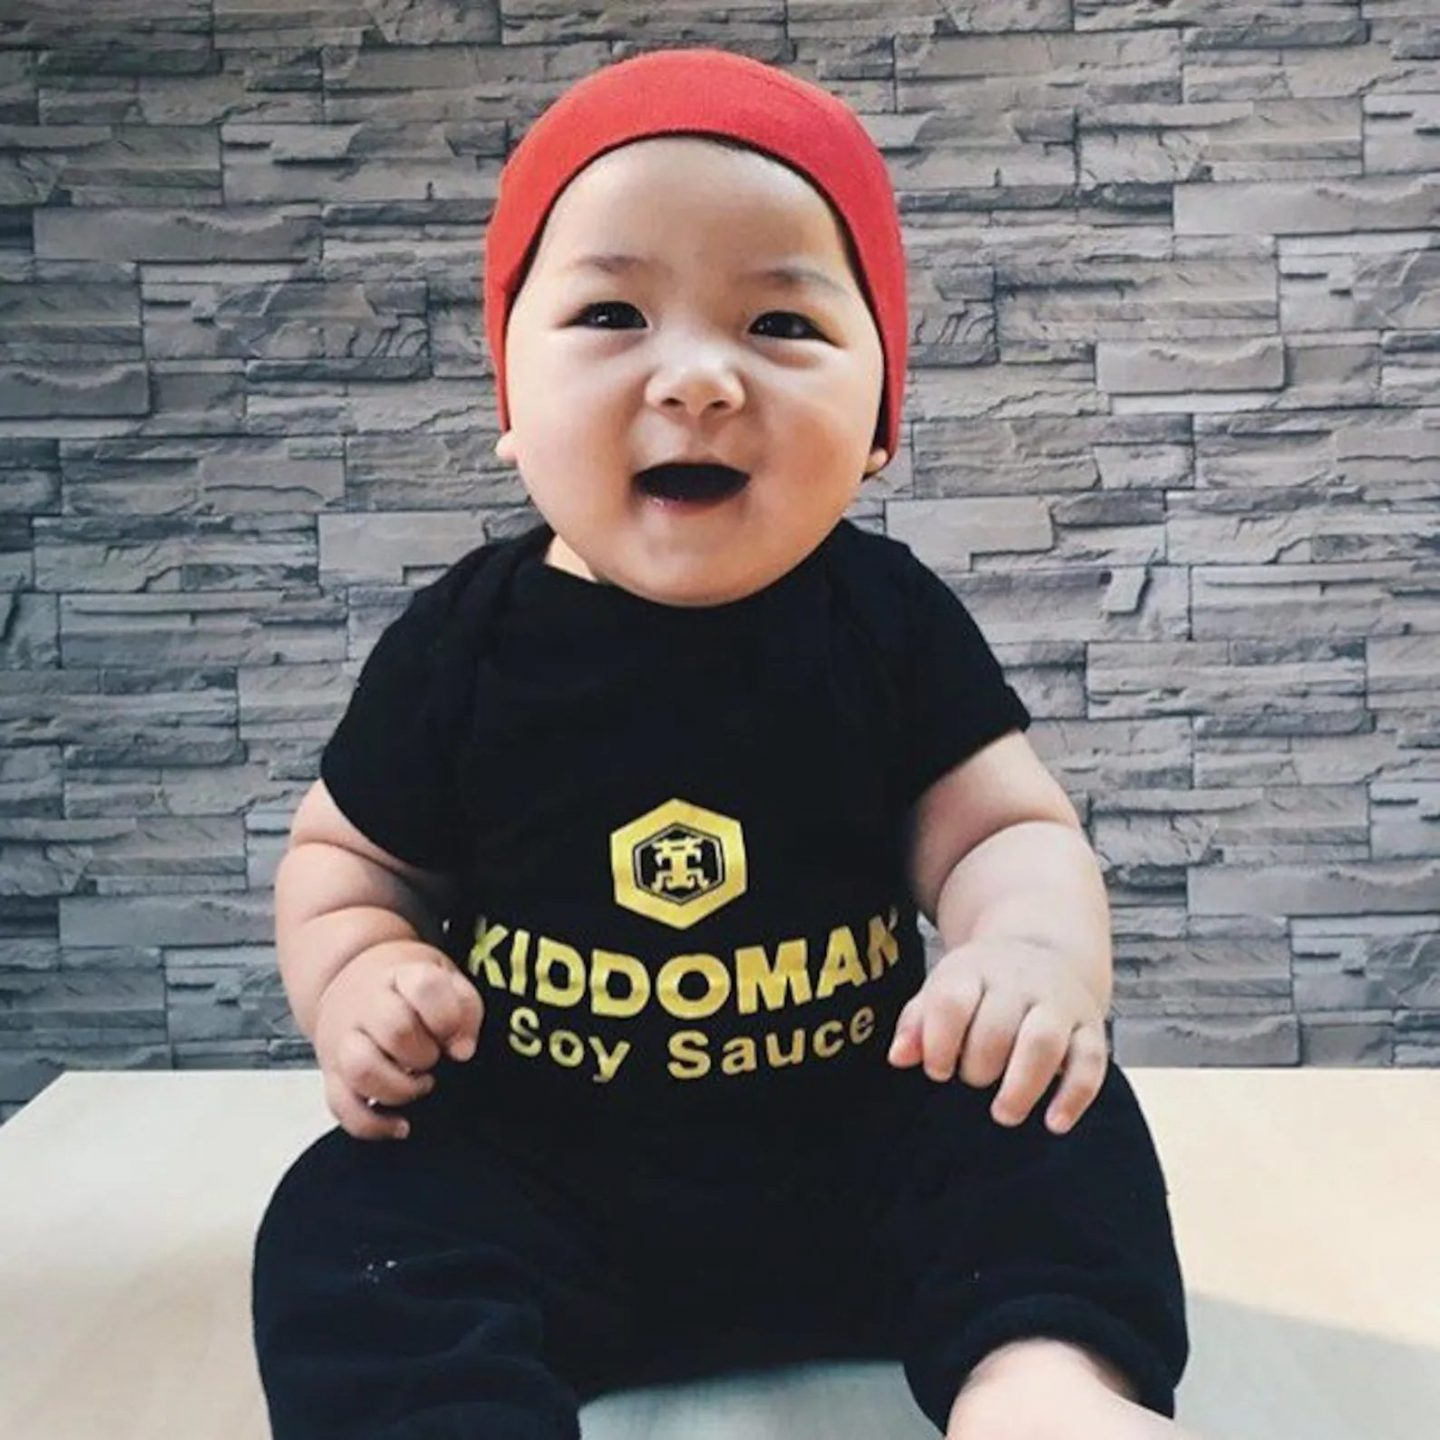 Cute and funny baby Halloween costume with soy sauce